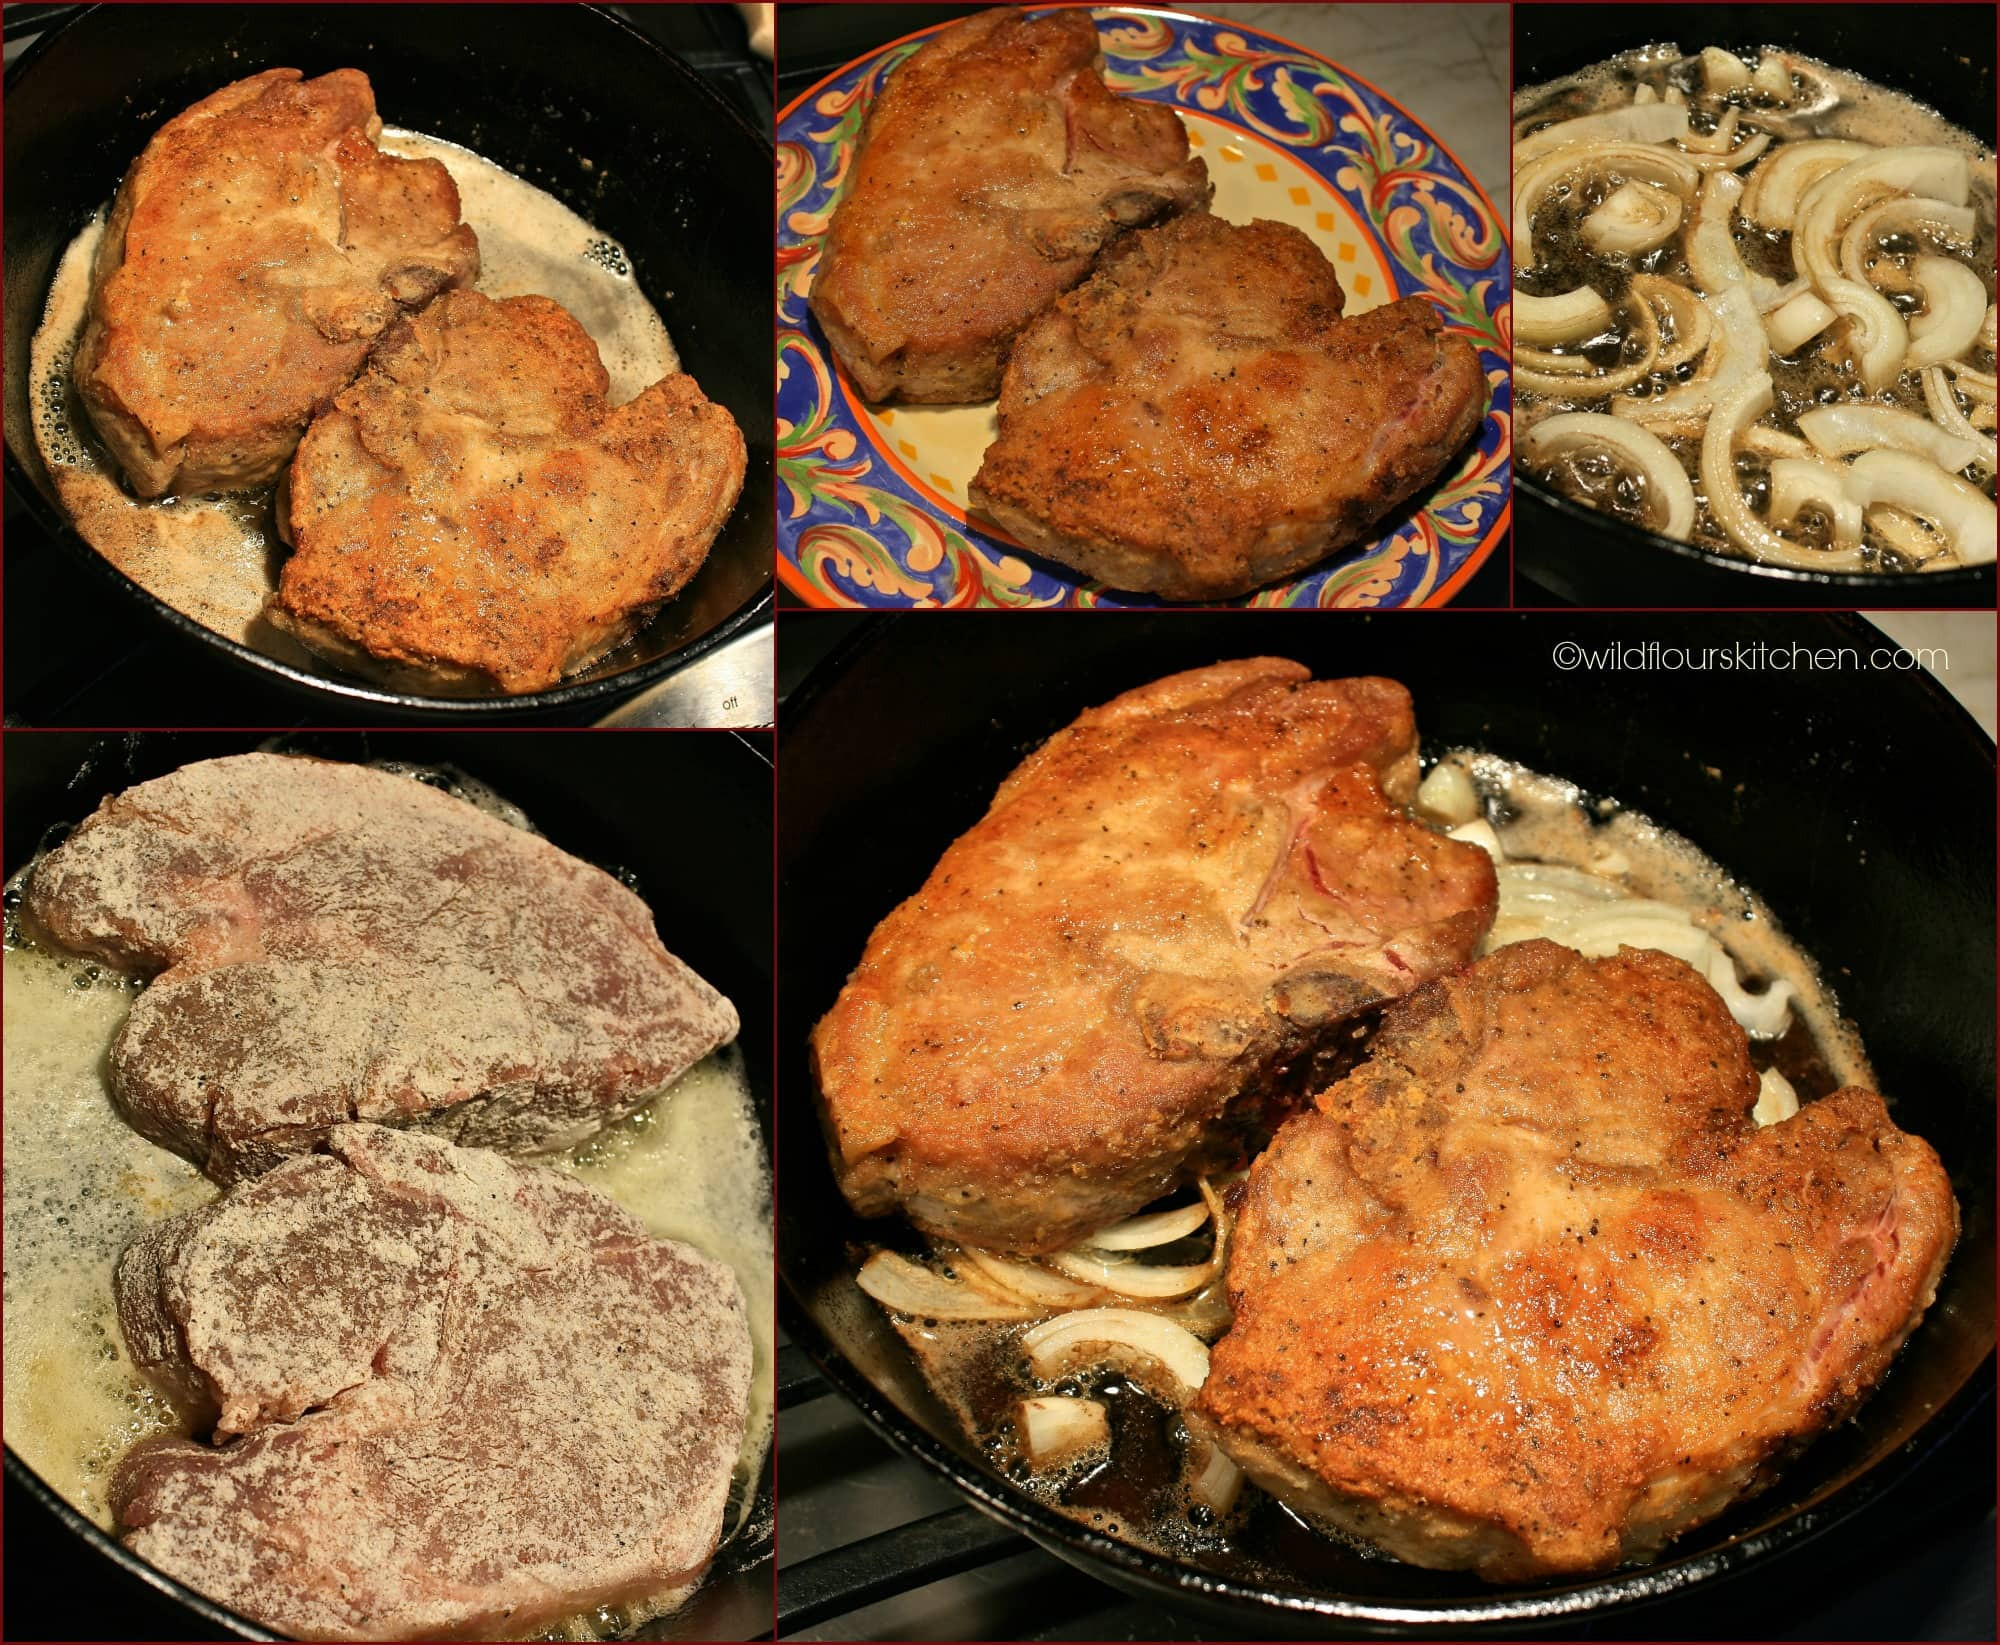 Country Fried Pork Chops  Southern Fried Pork Chops with Country Gravy Wildflour s